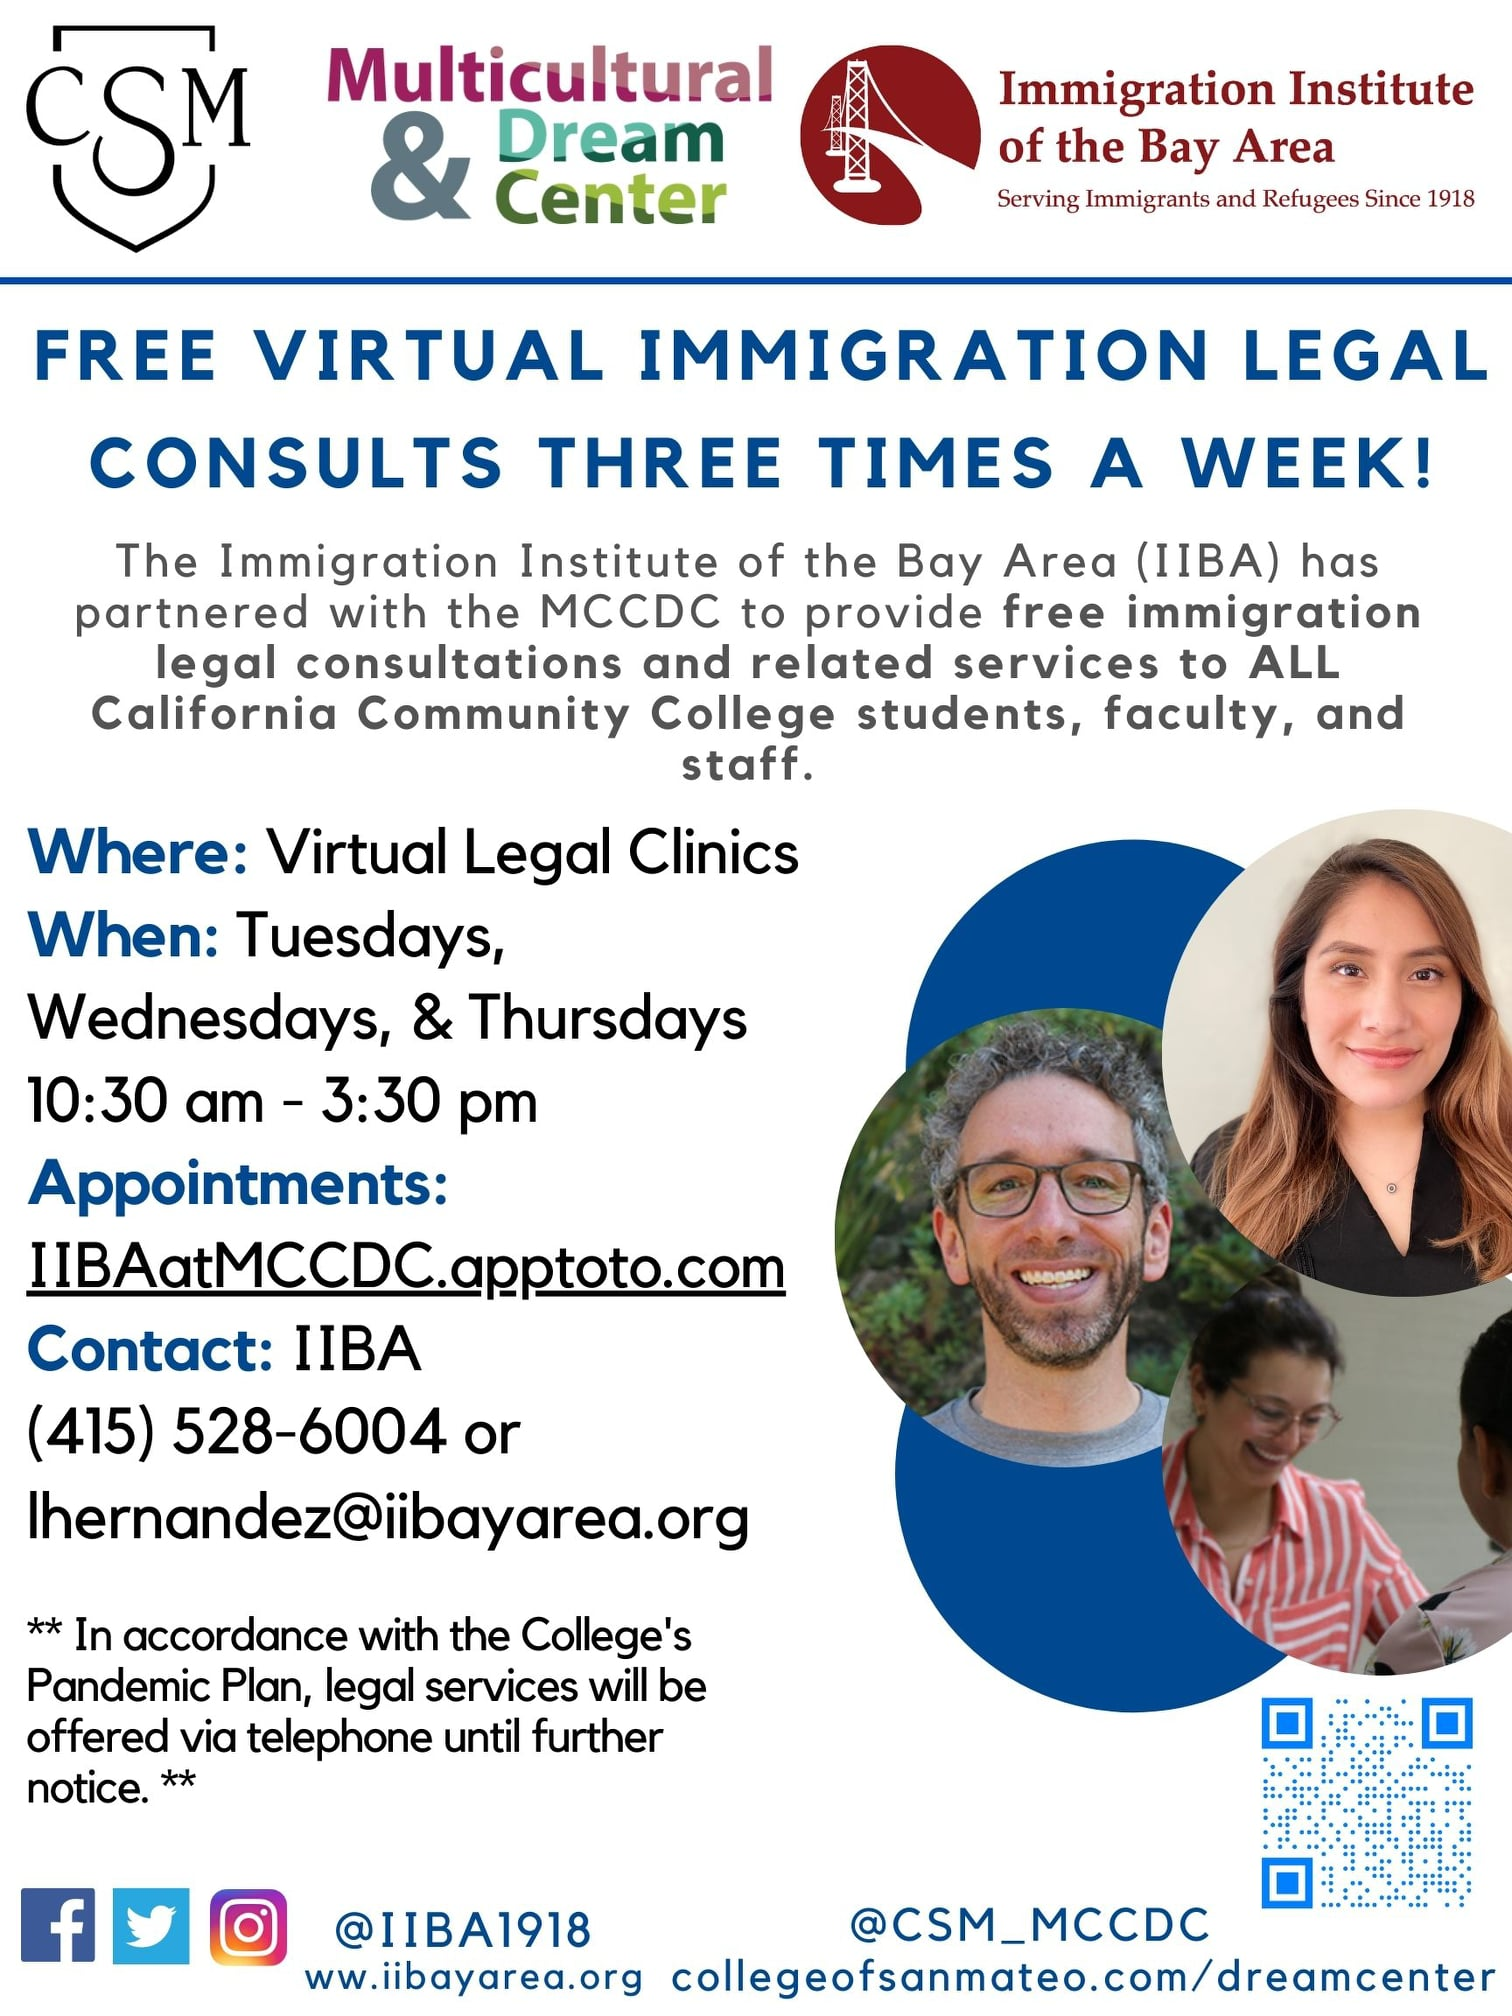 White Poster with Information of Legal Services. Text is CSM blue and black. circles on the right corner with an image of legal provider smiling.